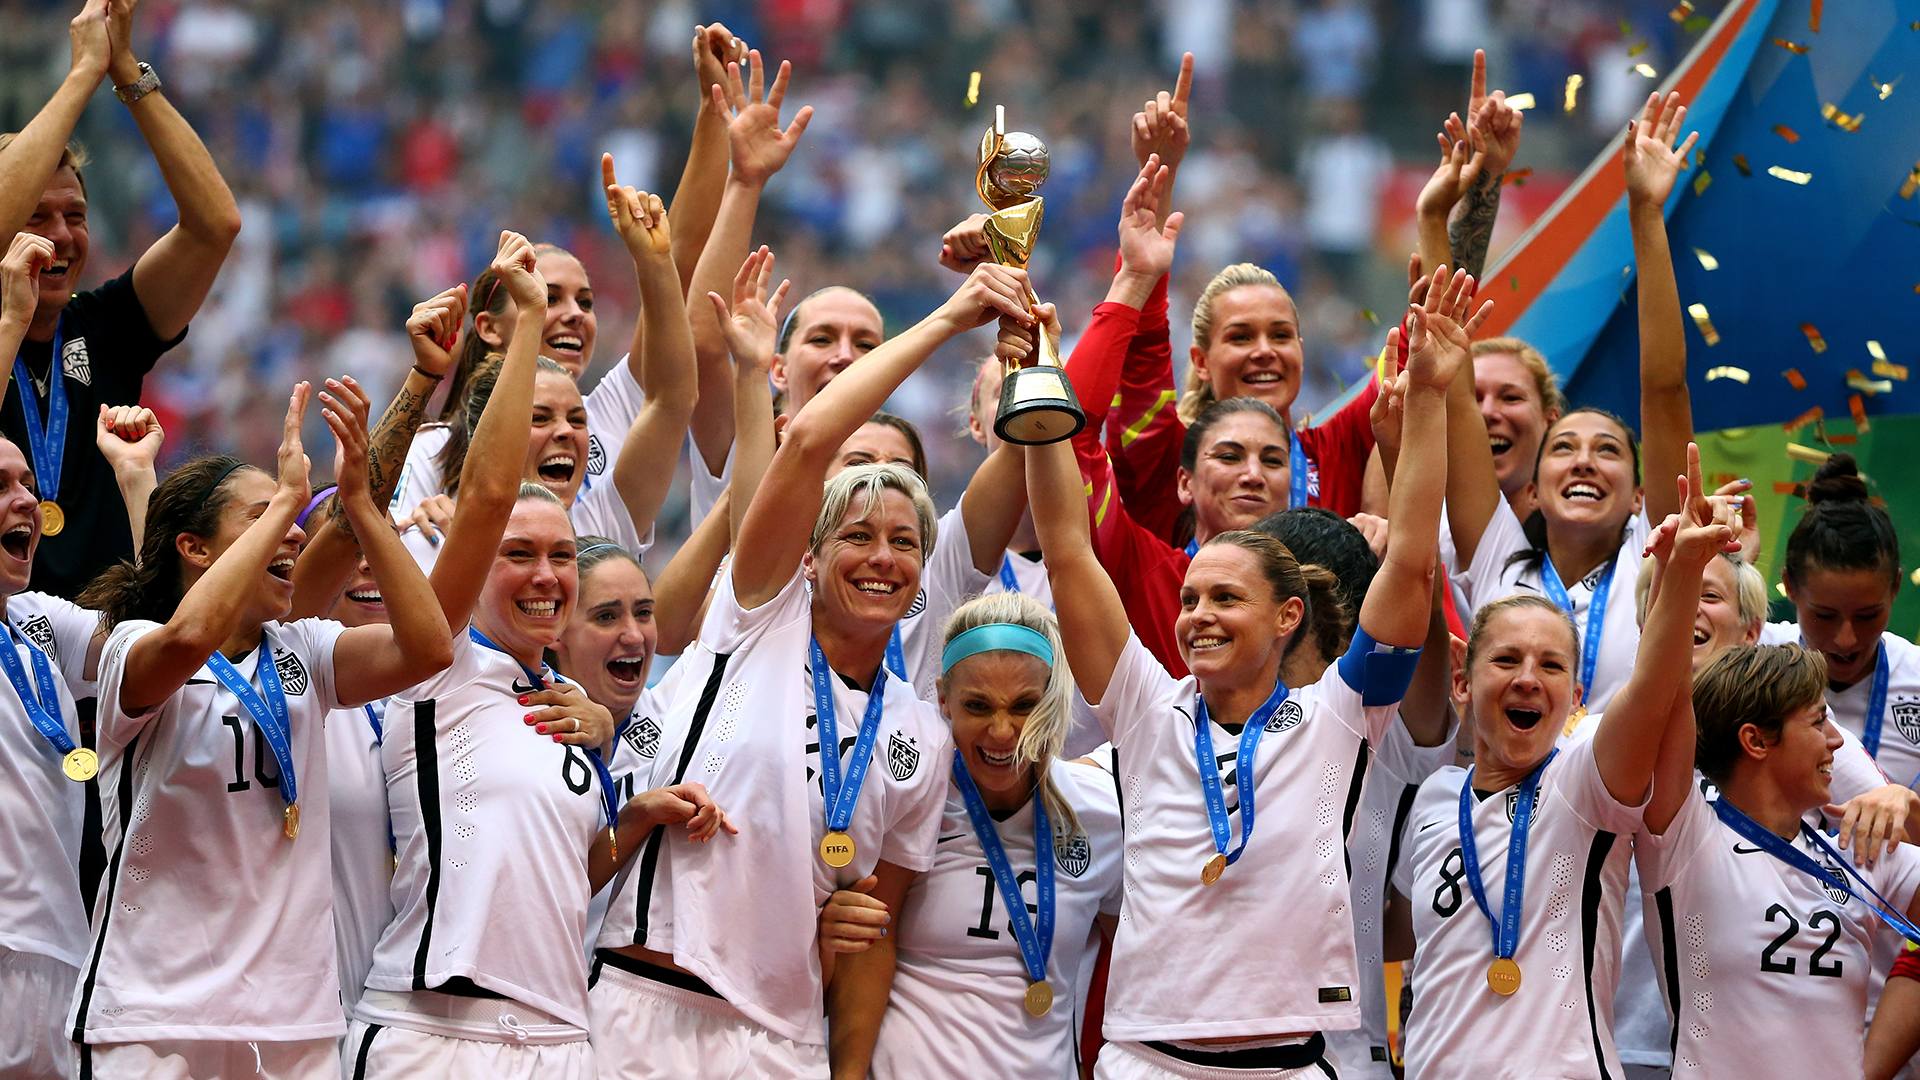 Women's World Cup 2019: Teams, fixtures, dates & everything you need to know